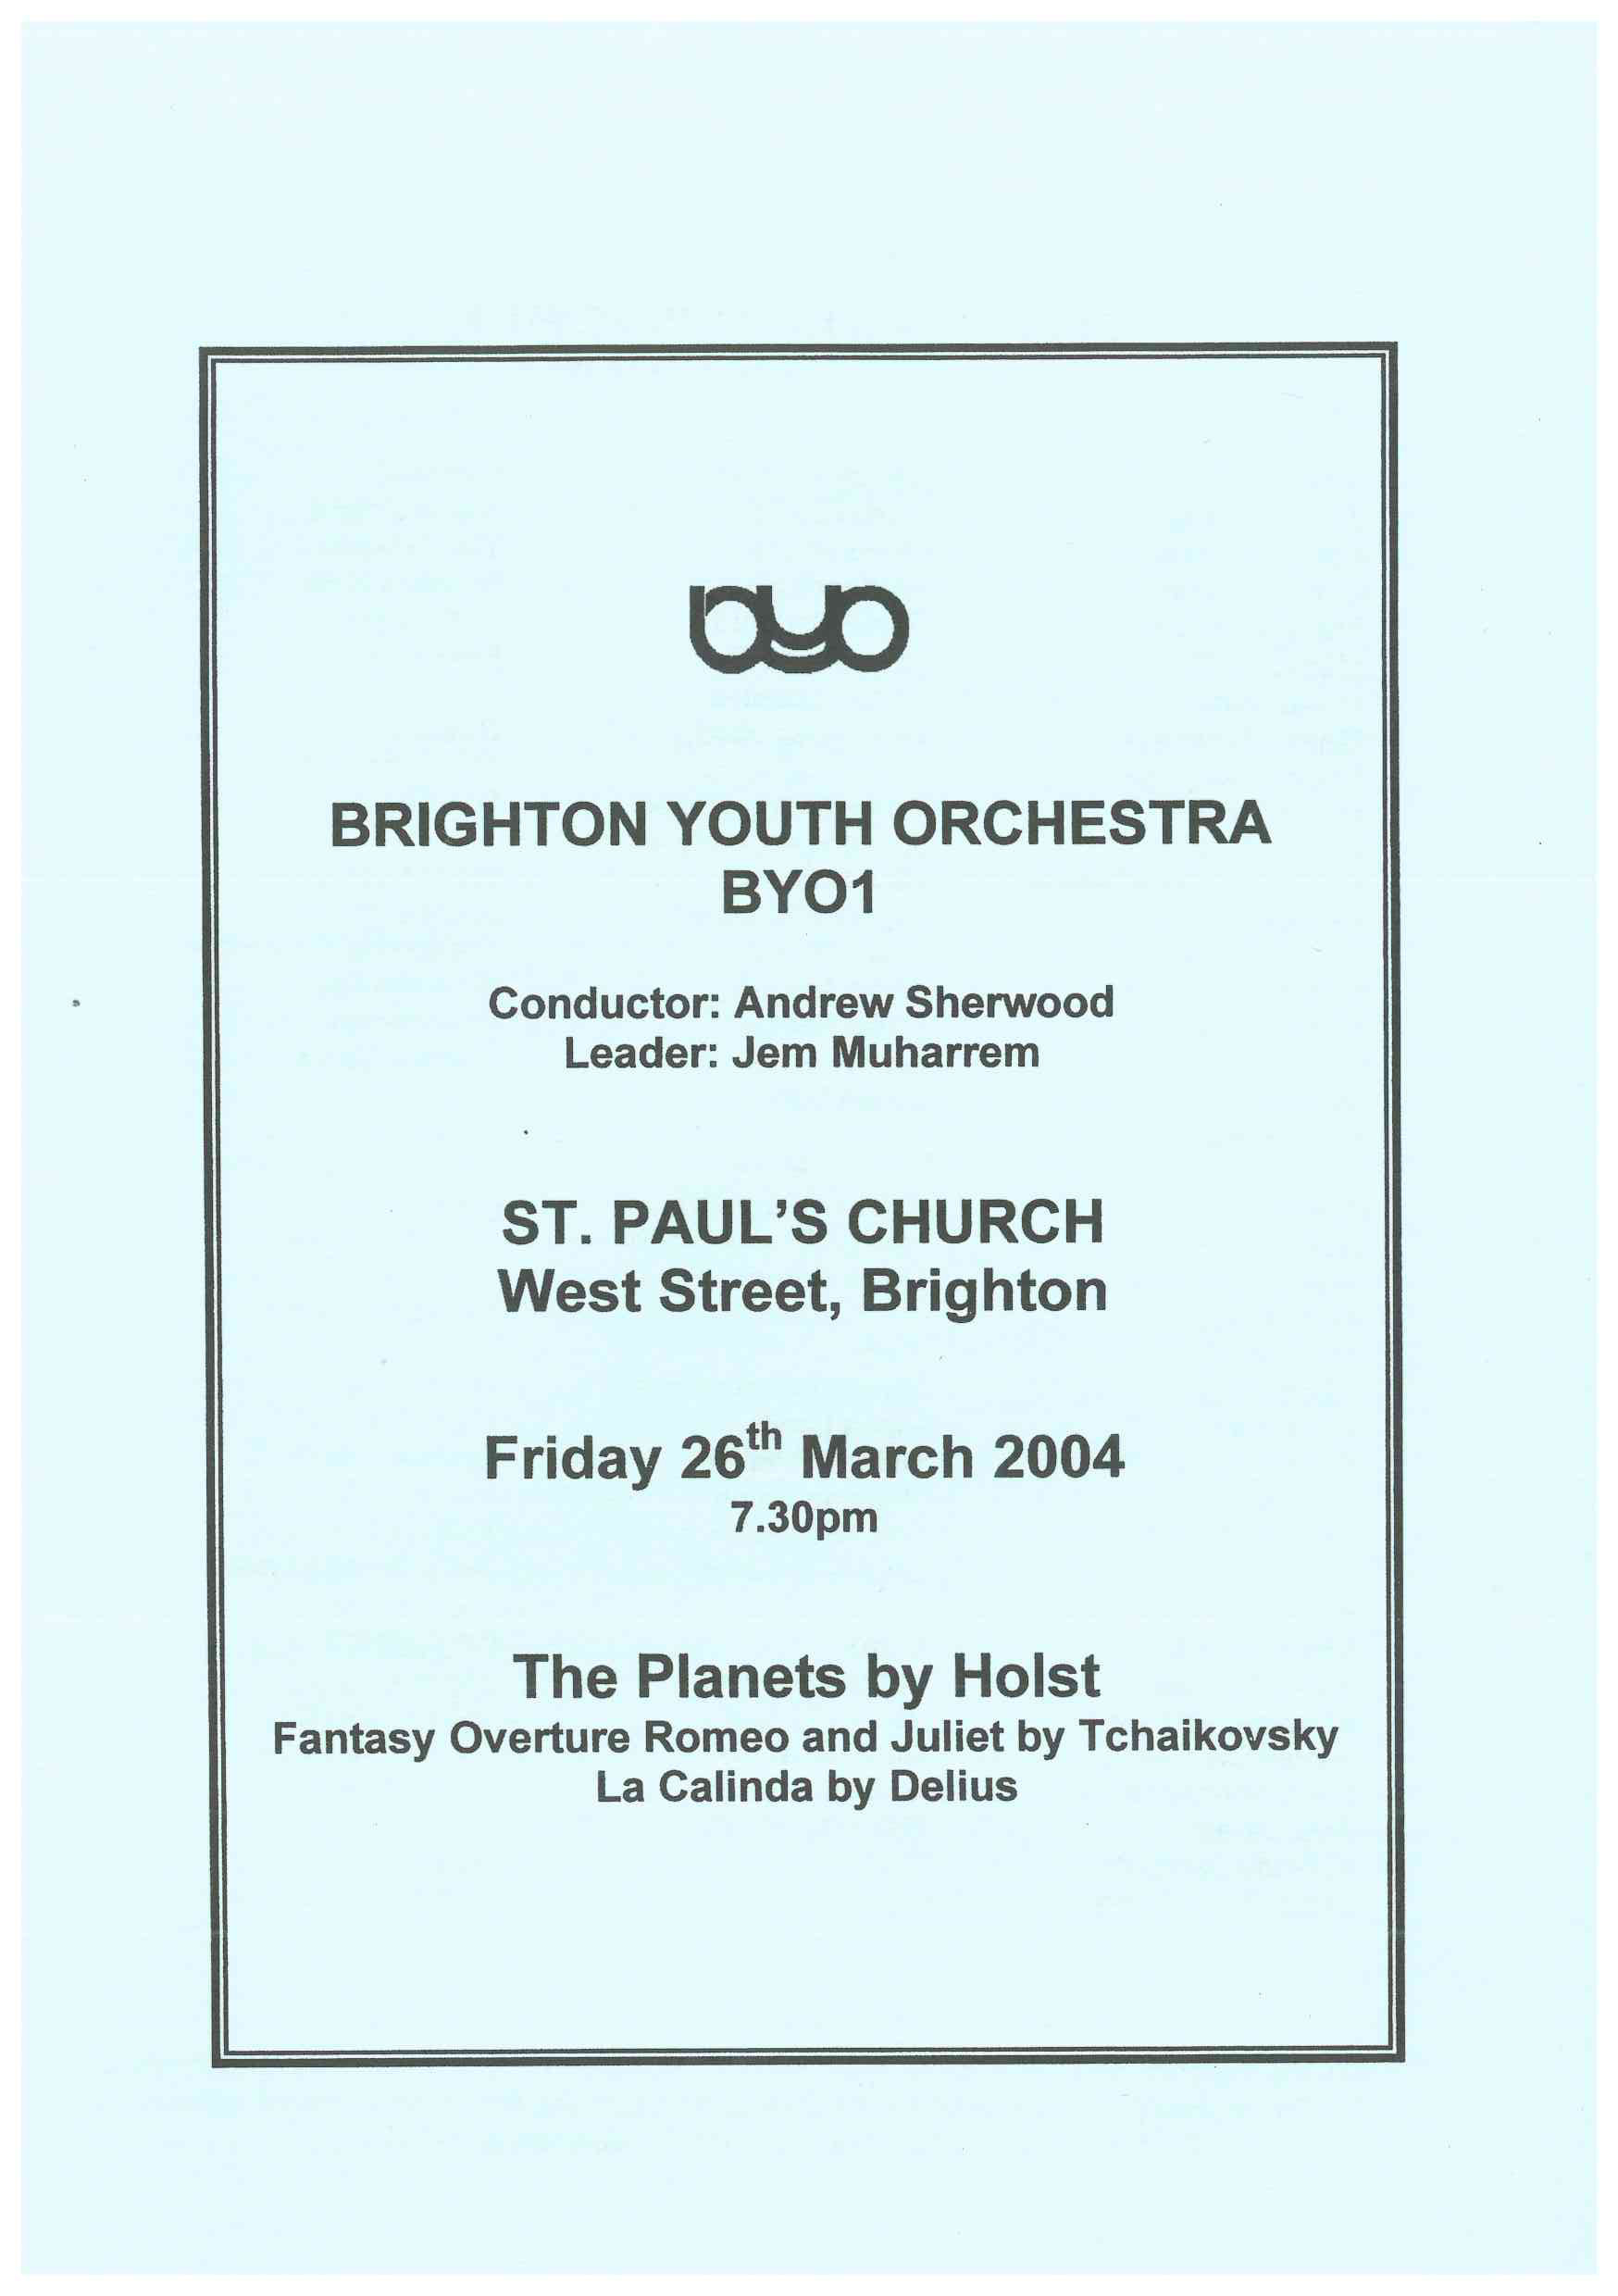 00389-BYO1 St. Paul's Church, 26th March 2004.jpg